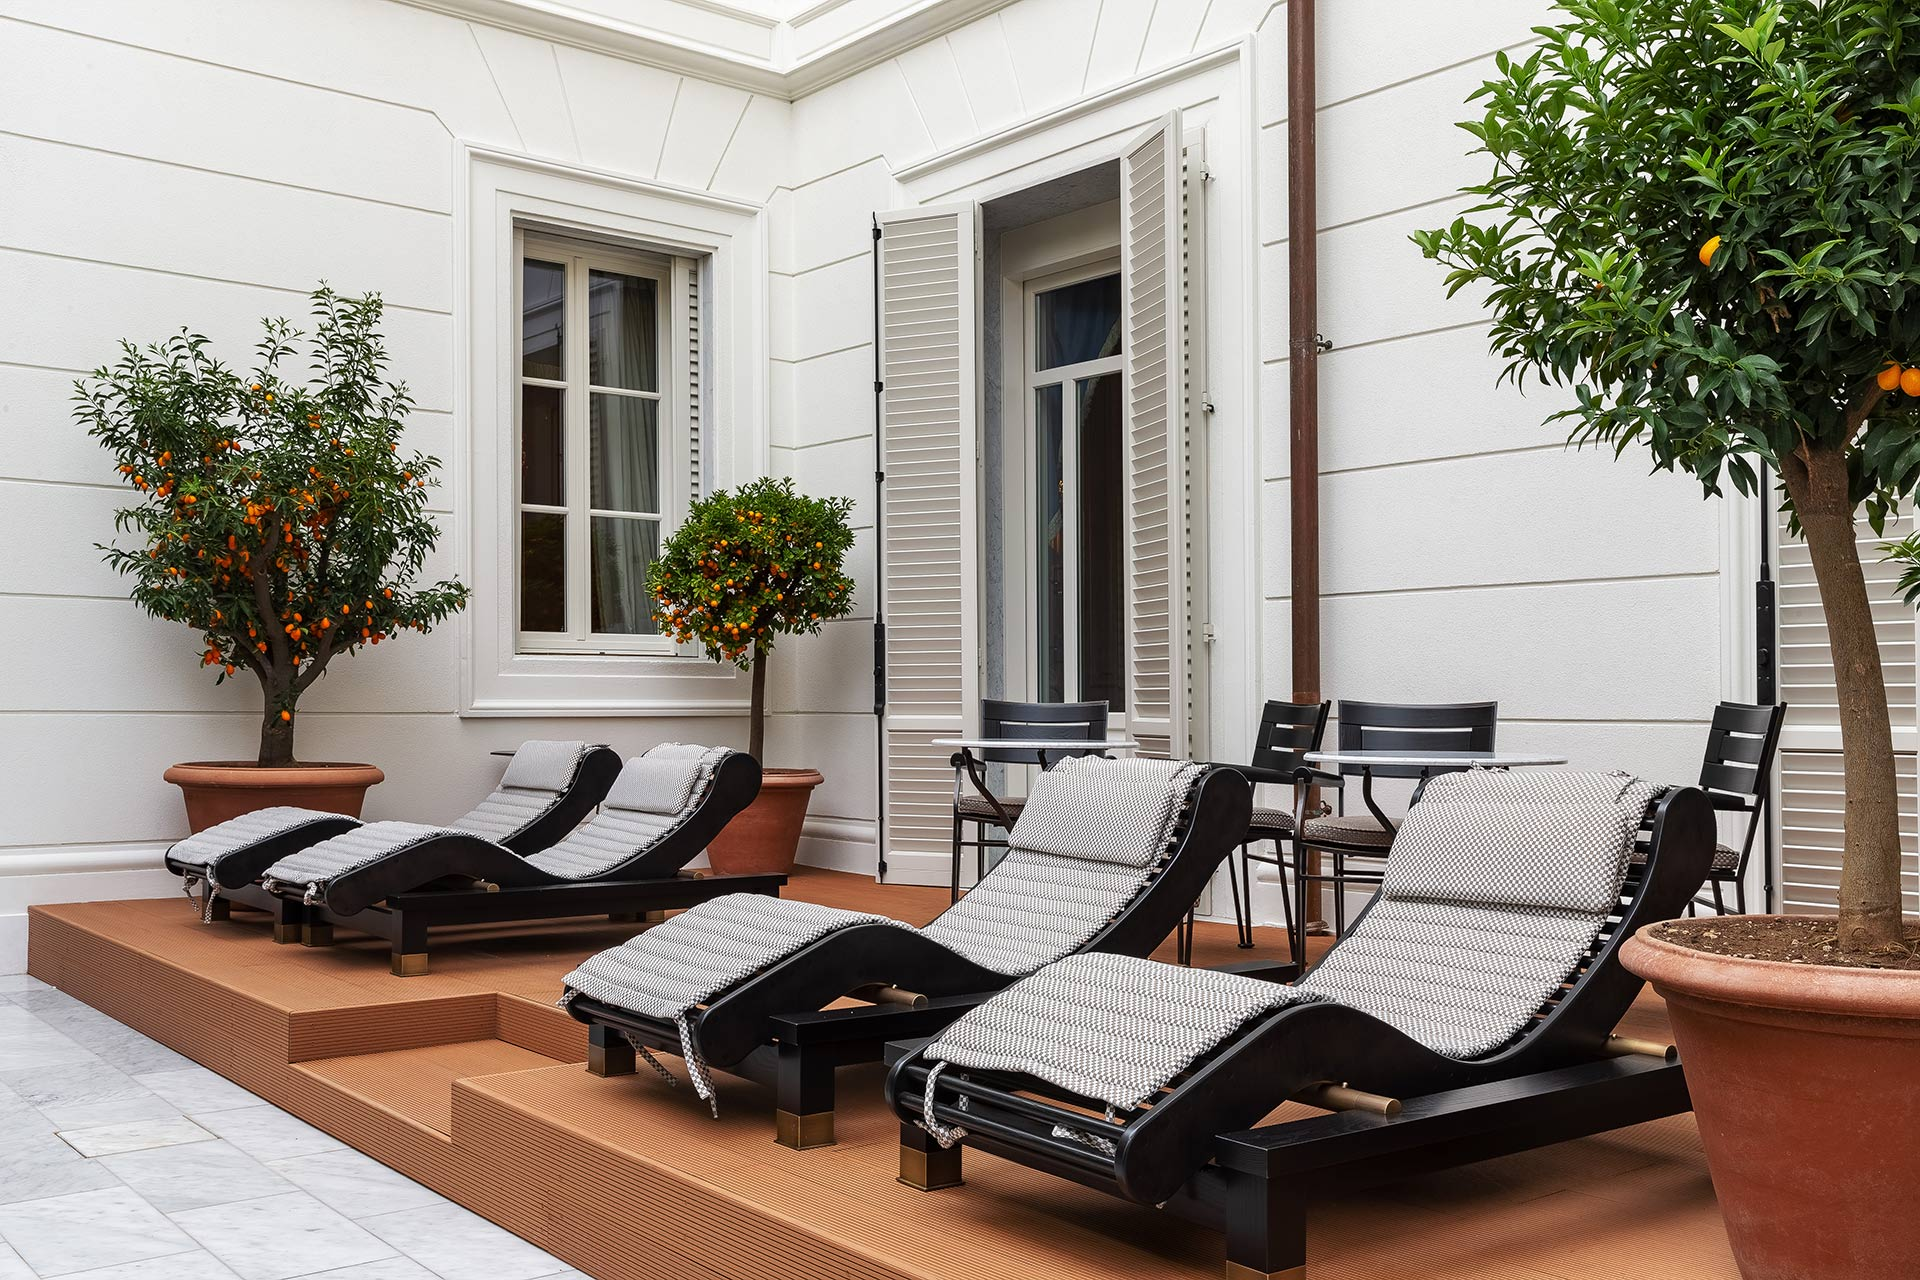 Patio of La Datcha, a luxury resort in Forte dei Marmi, Italy, furnished with Promemoria | Promemoria